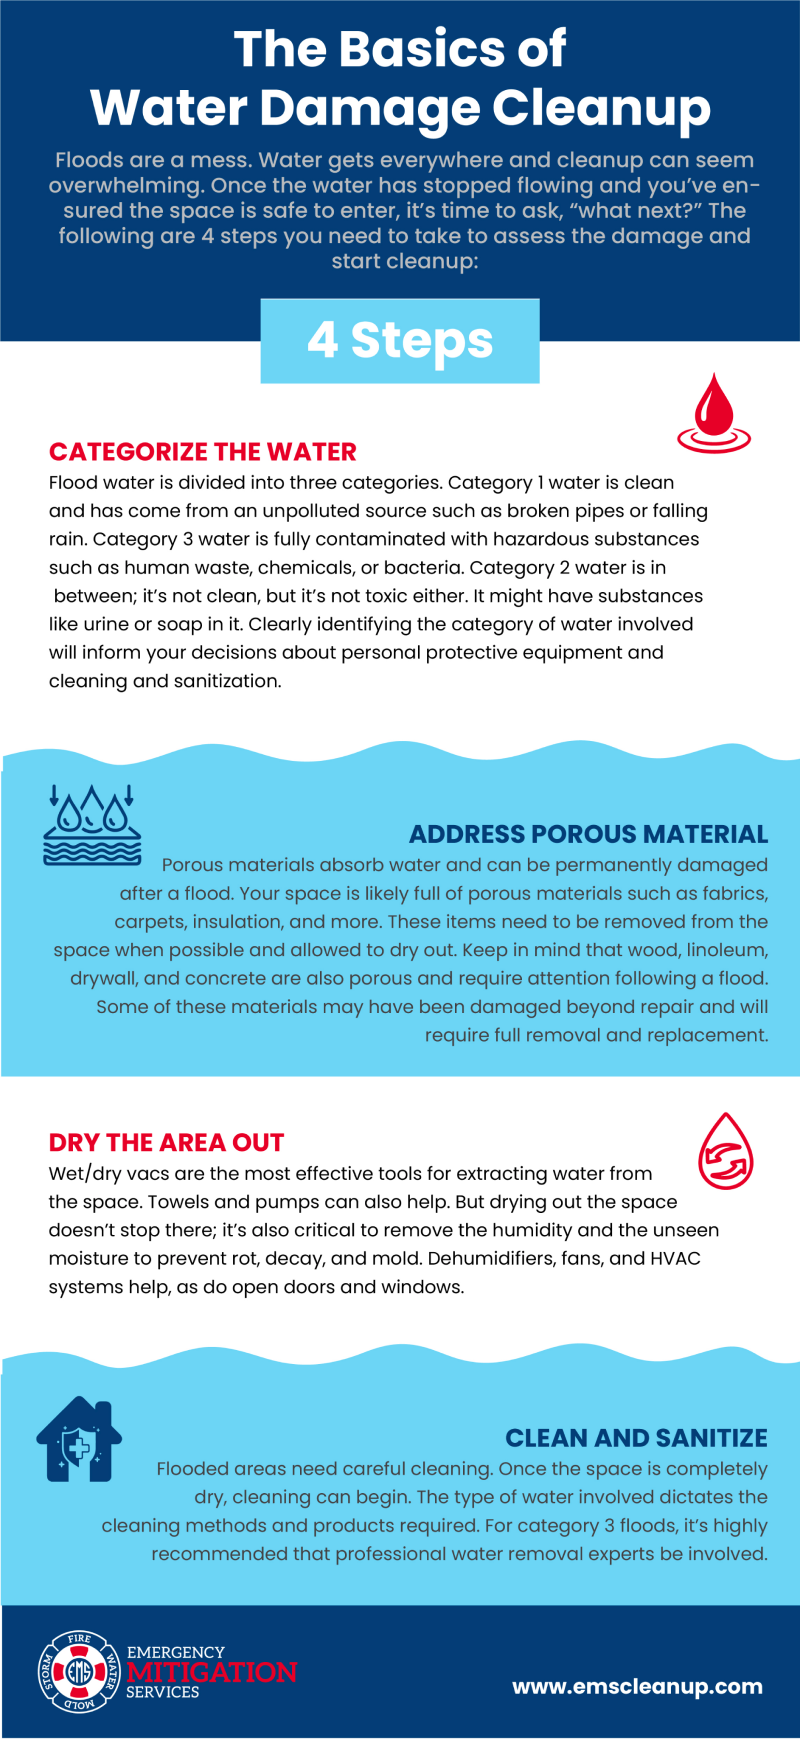 Basics of Water Damage Cleanup